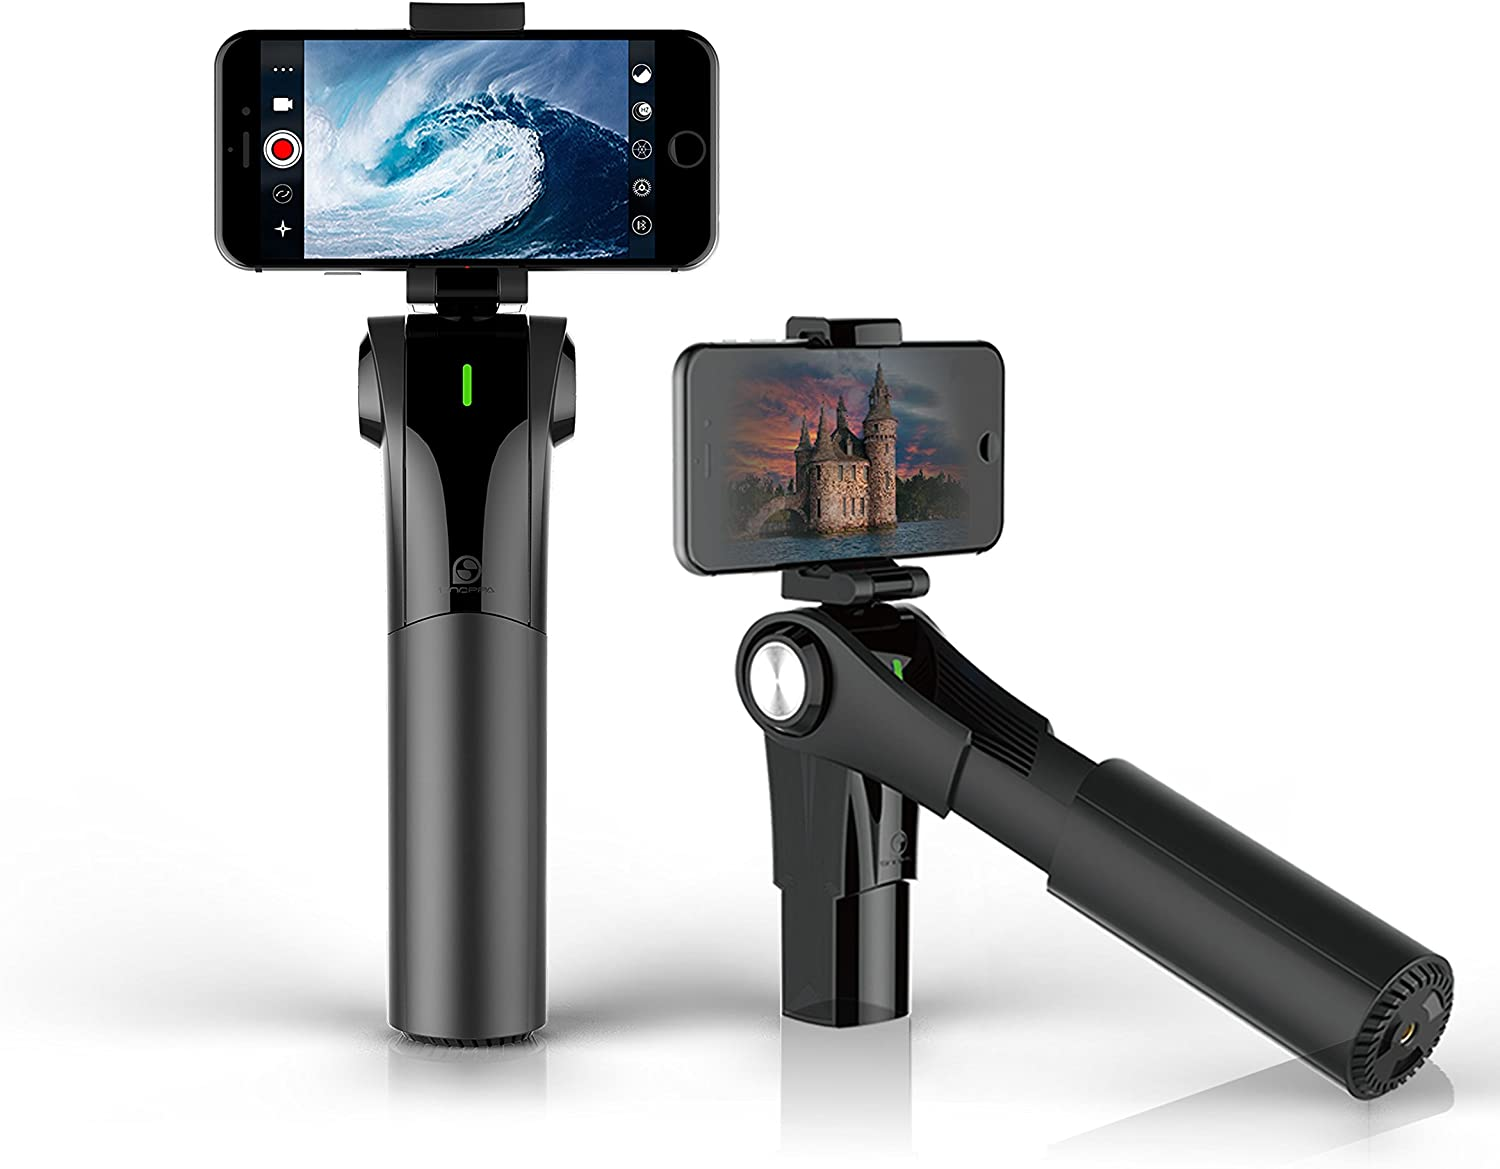 Amazon Com Snoppa M1 3 Axis Gimbal Stabilizer For Iphone Android Phone Create Smooth Video With Your Smartphone Works With All Iphone Android Including Iphone 8 8 Plus 7 Plus 6